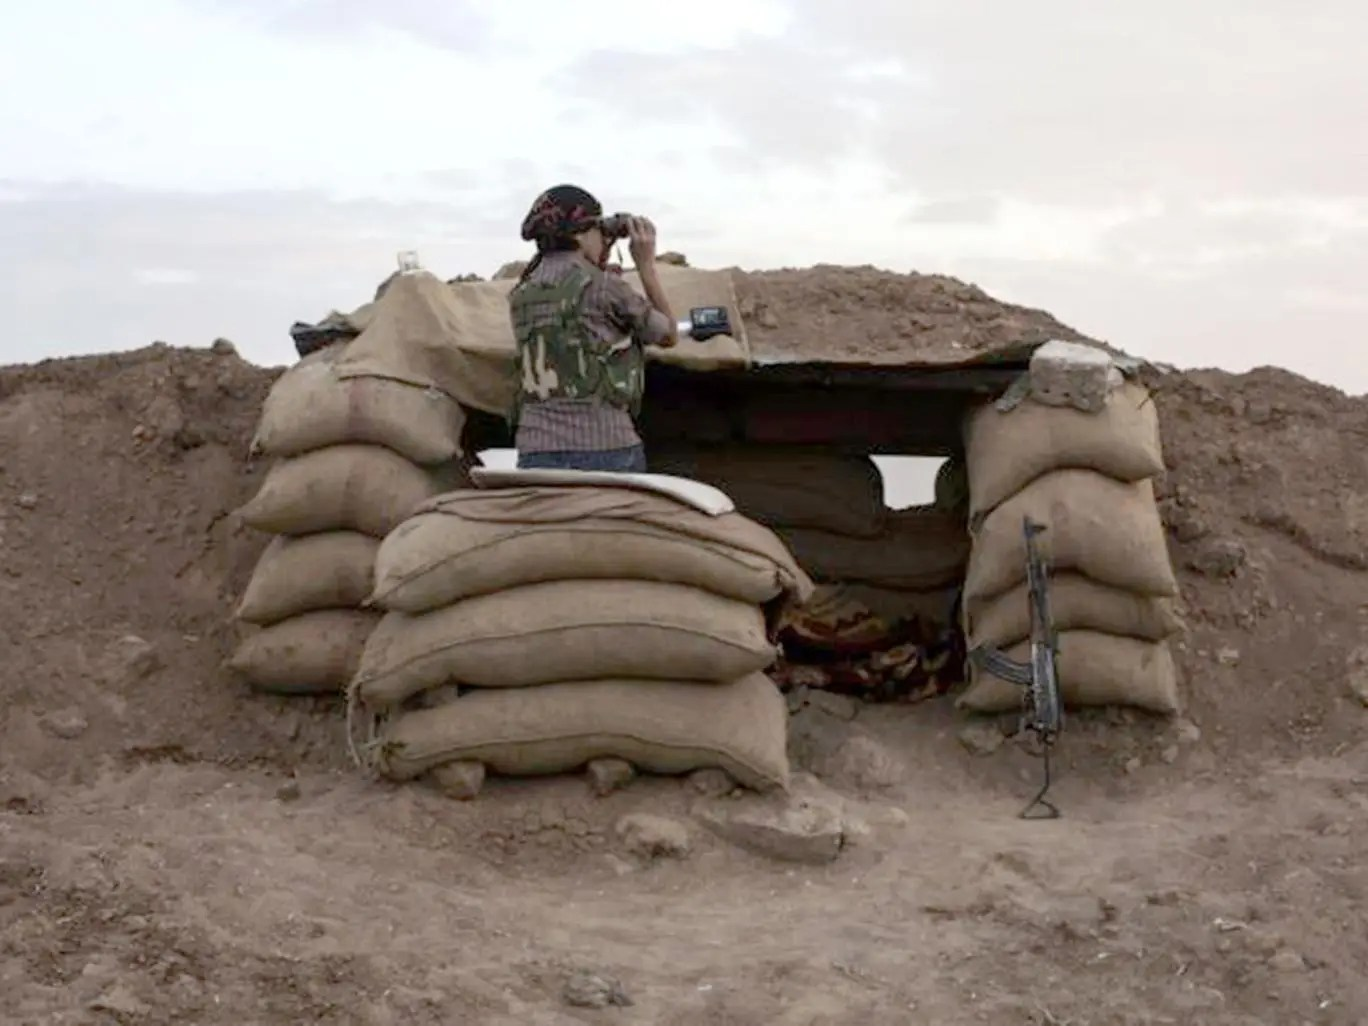 A Kurdish fighter surveys the border between Turkey and Iraq